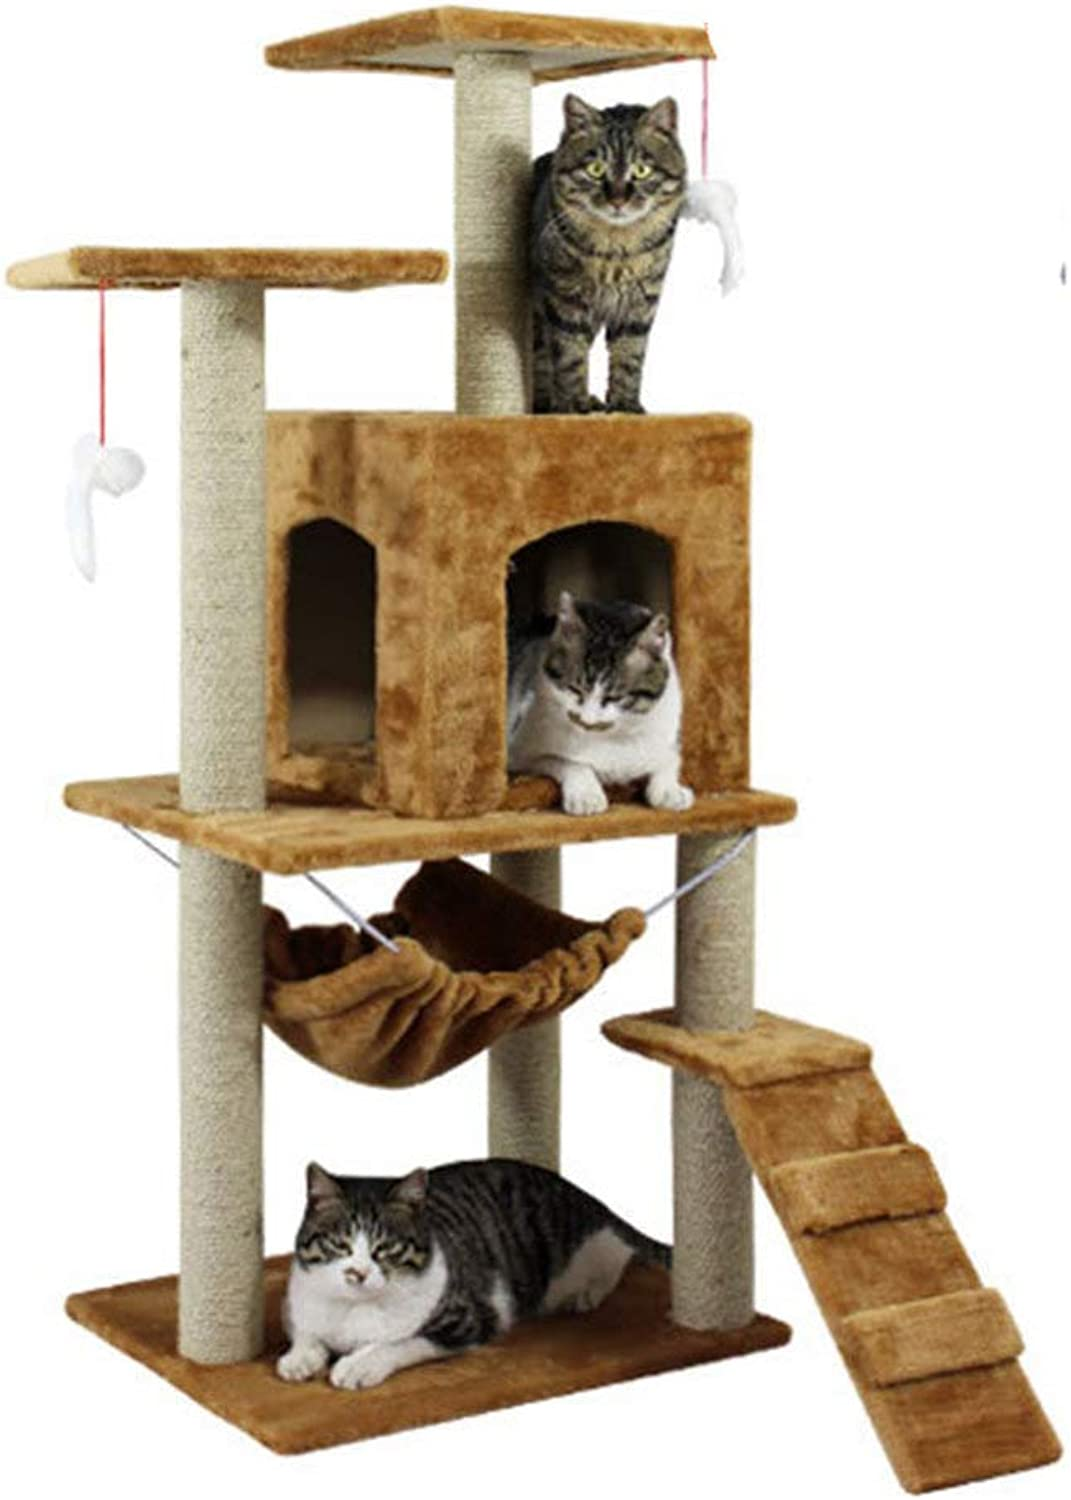 Cat Tree Pet MultiLevel SisalCovered Scratcher Slope,Hammock Bed And Toy Ball,Yellow